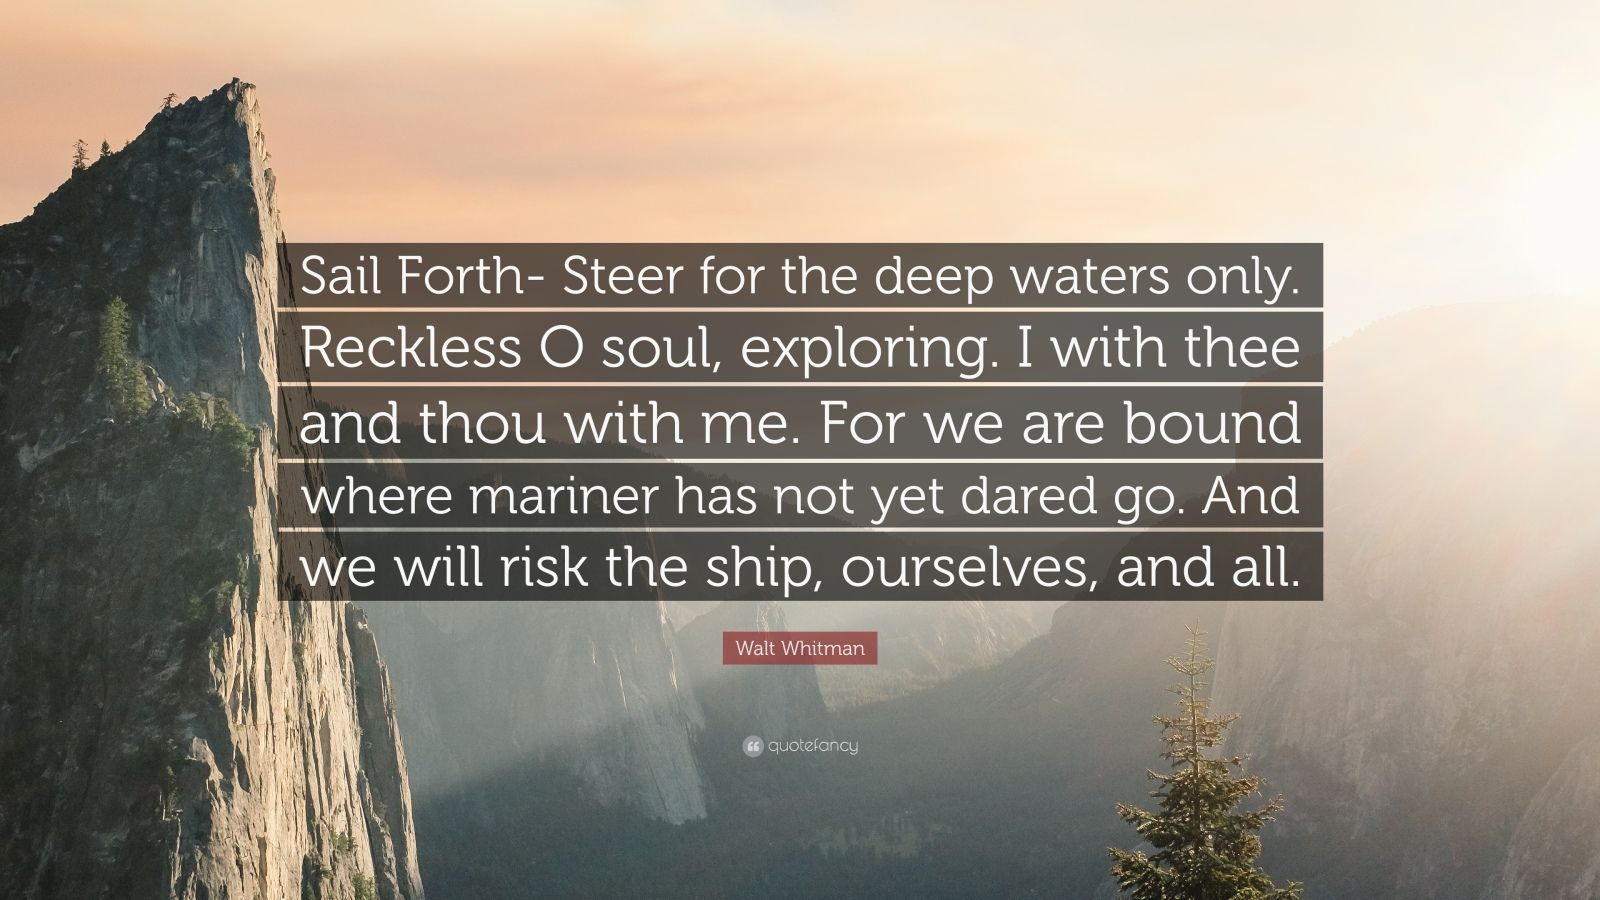 """Walt Whitman Quote: """"Sail Forth- Steer for the deep waters only. Reckless O soul, exploring. I with thee and thou with me. For we are bound where mariner has not yet dared go. And we will risk the ship, ourselves, and all."""""""